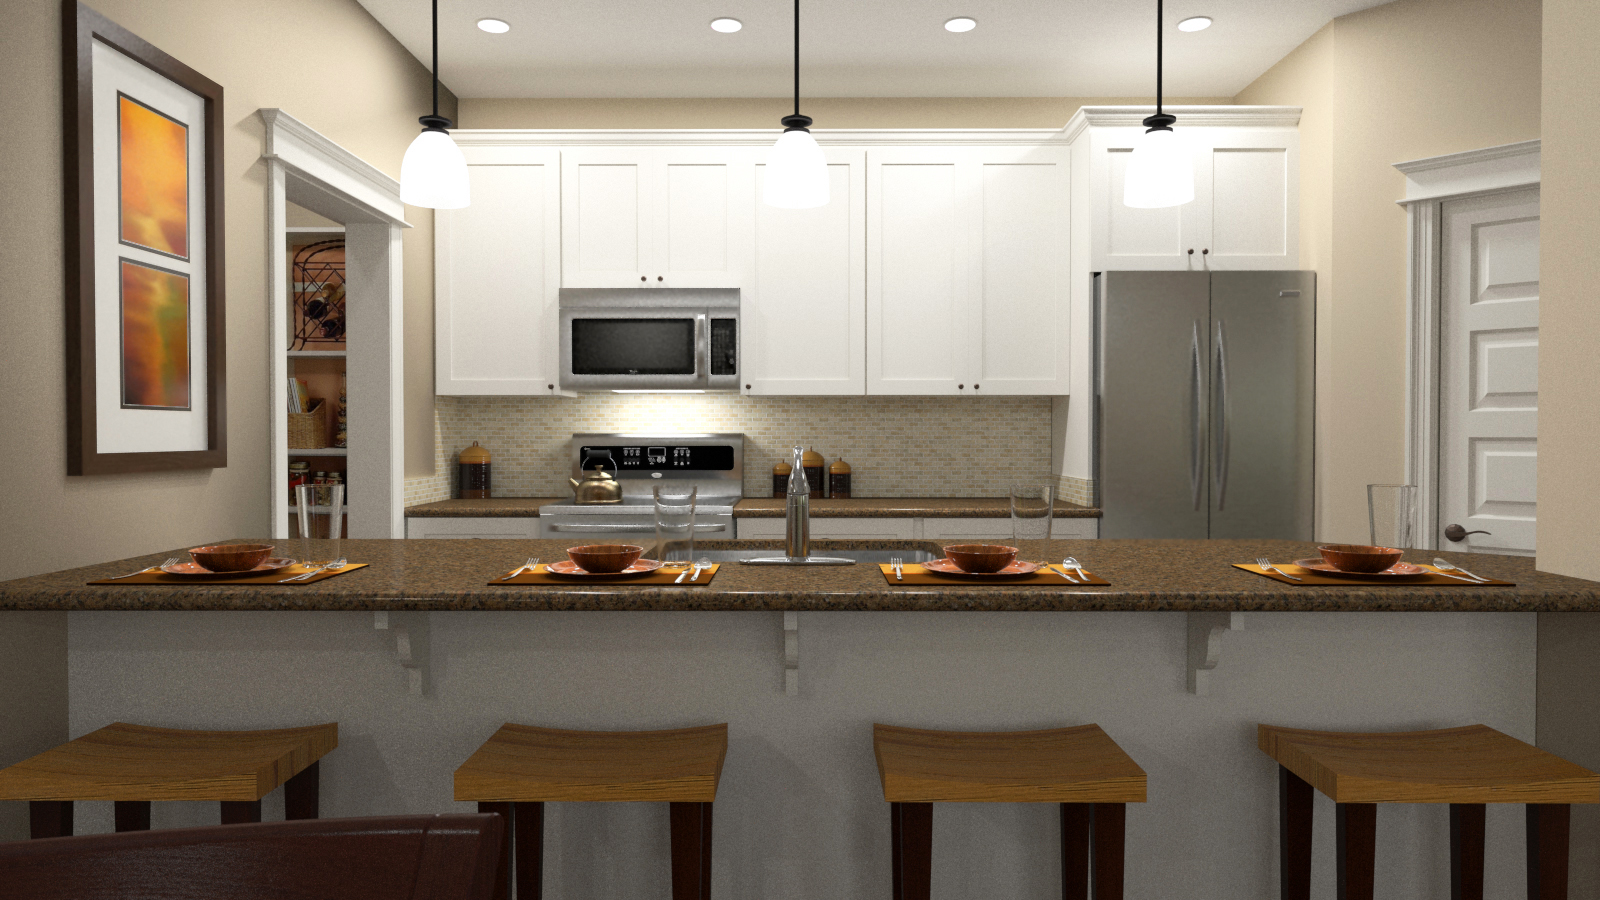 The client's blueprint was converted to a digital model. 3d appliances, COUNTERS, and cabinets were installed PER CLIENT'S SPECIFICATIONS. renderings were POSTED ON MLS AND REAL ESTATE WEBSITES to pre-sell condo units long before the construction was completed.